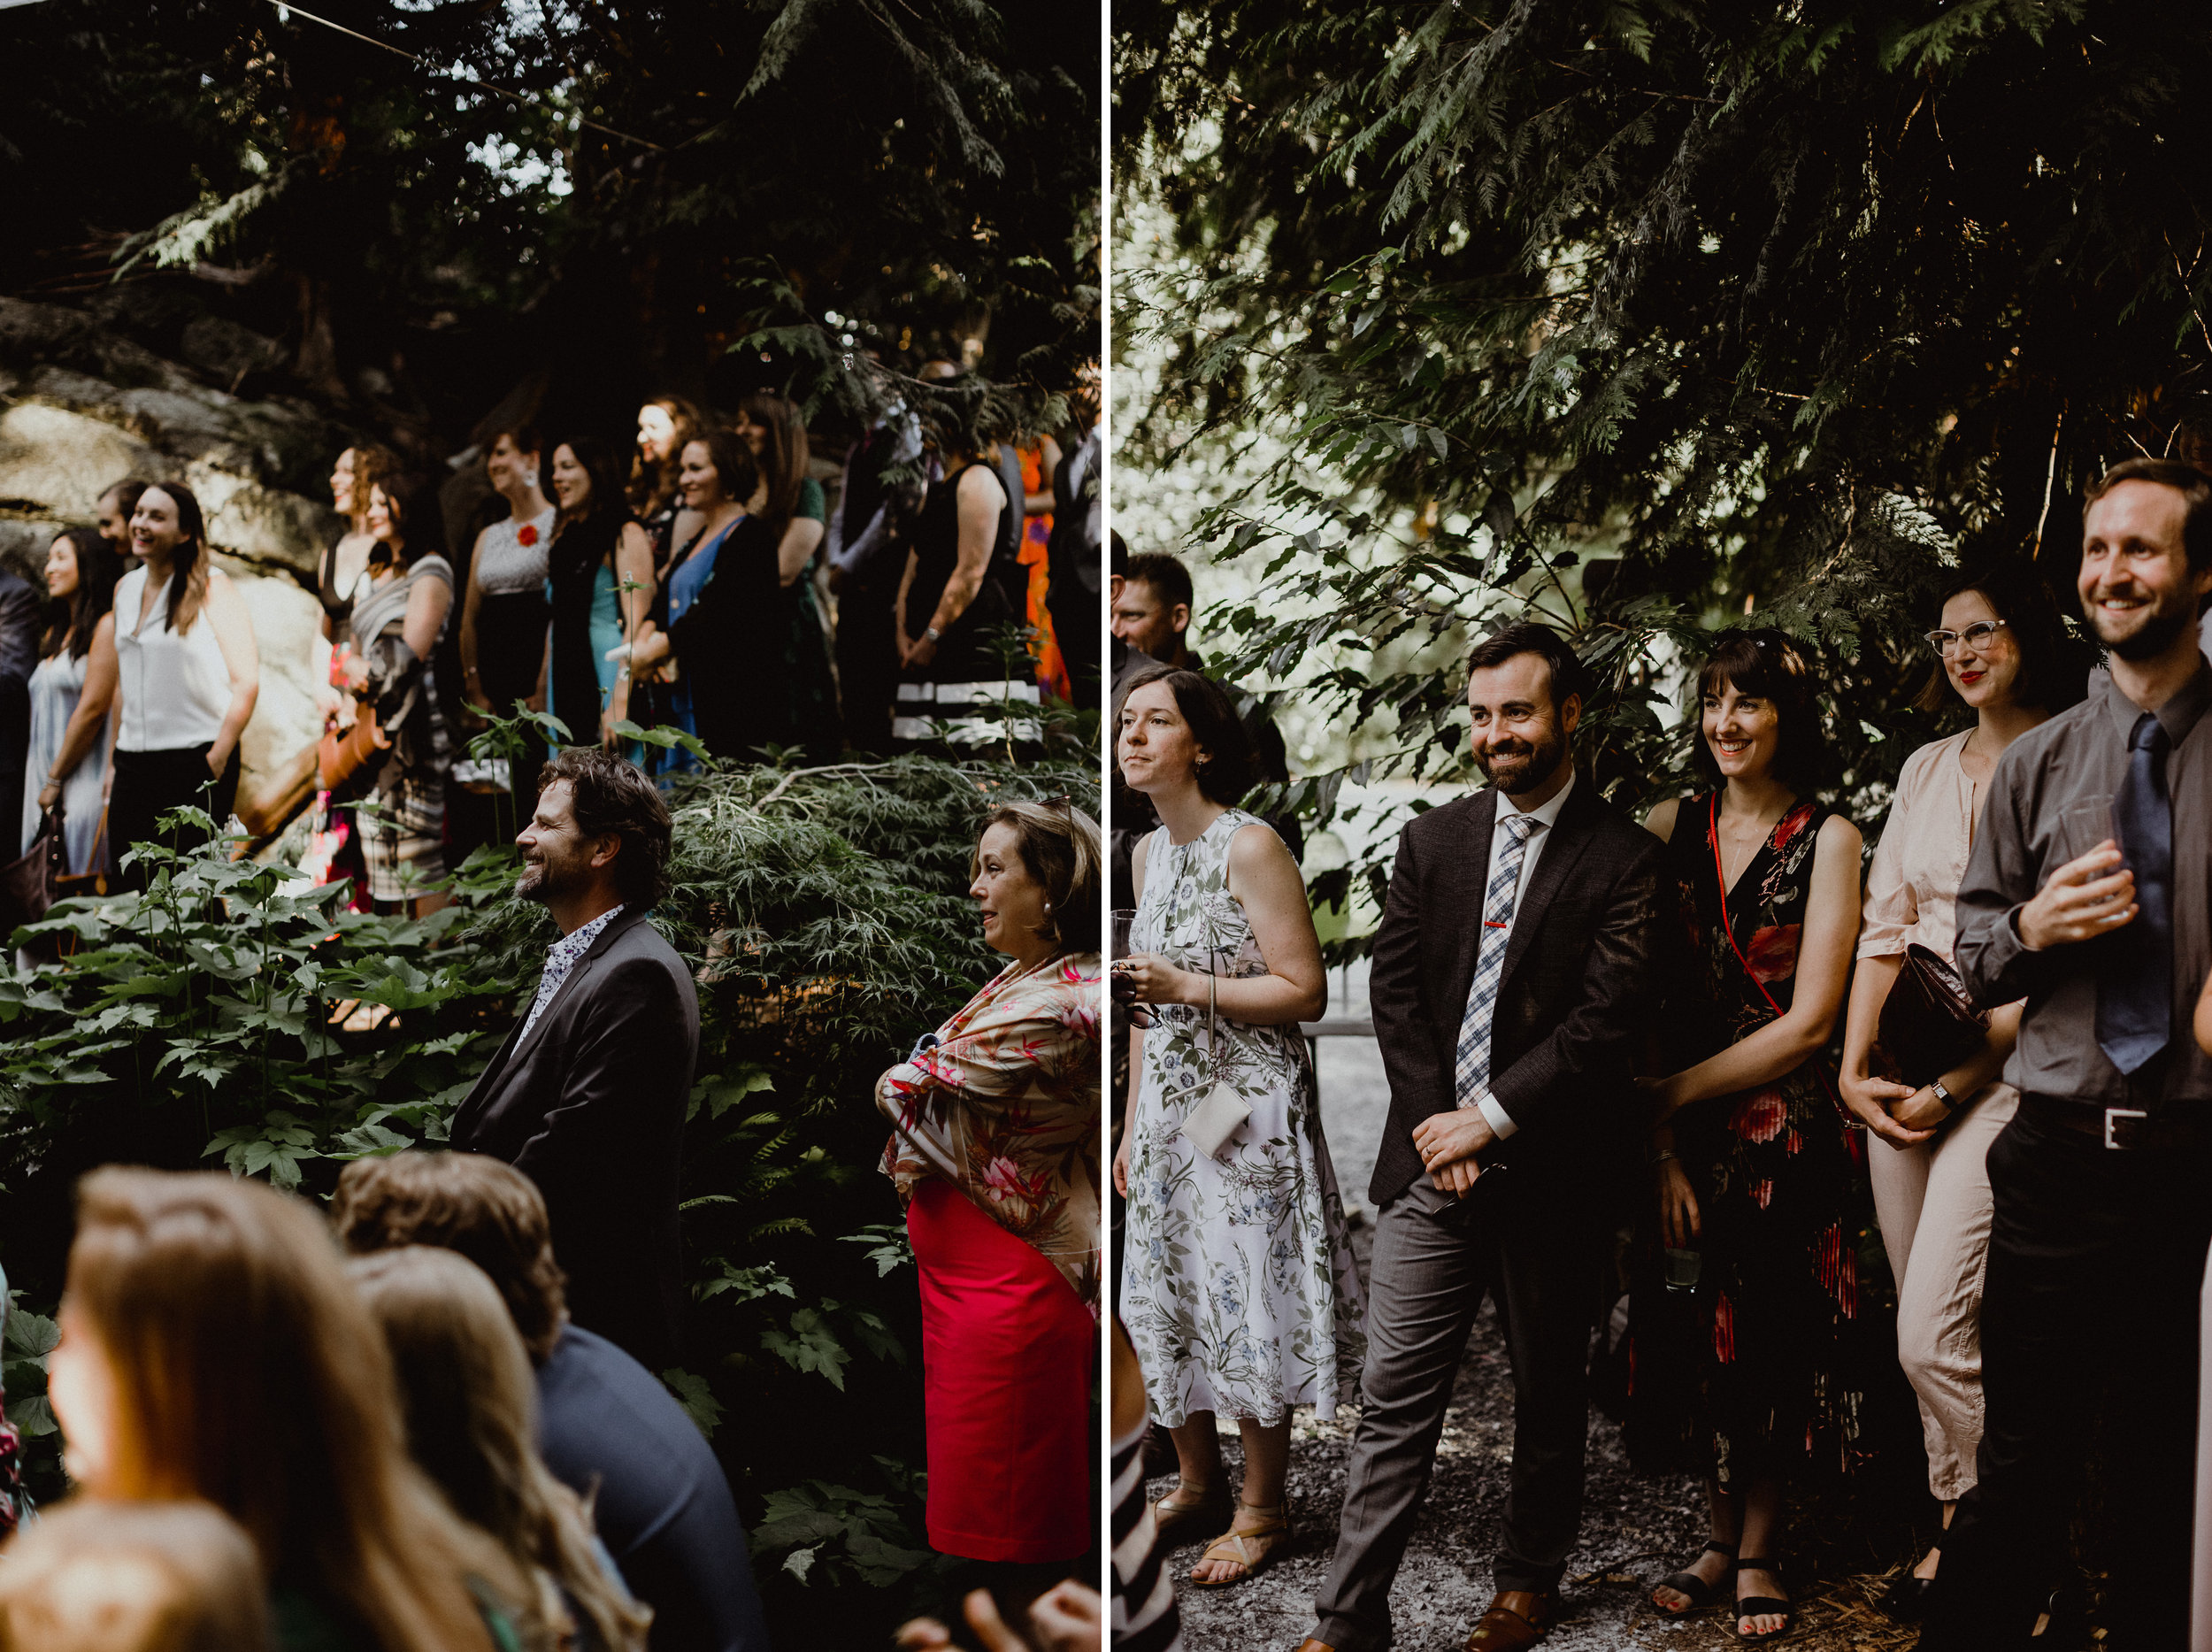 west-vancouver-backyard-wedding-117.jpg